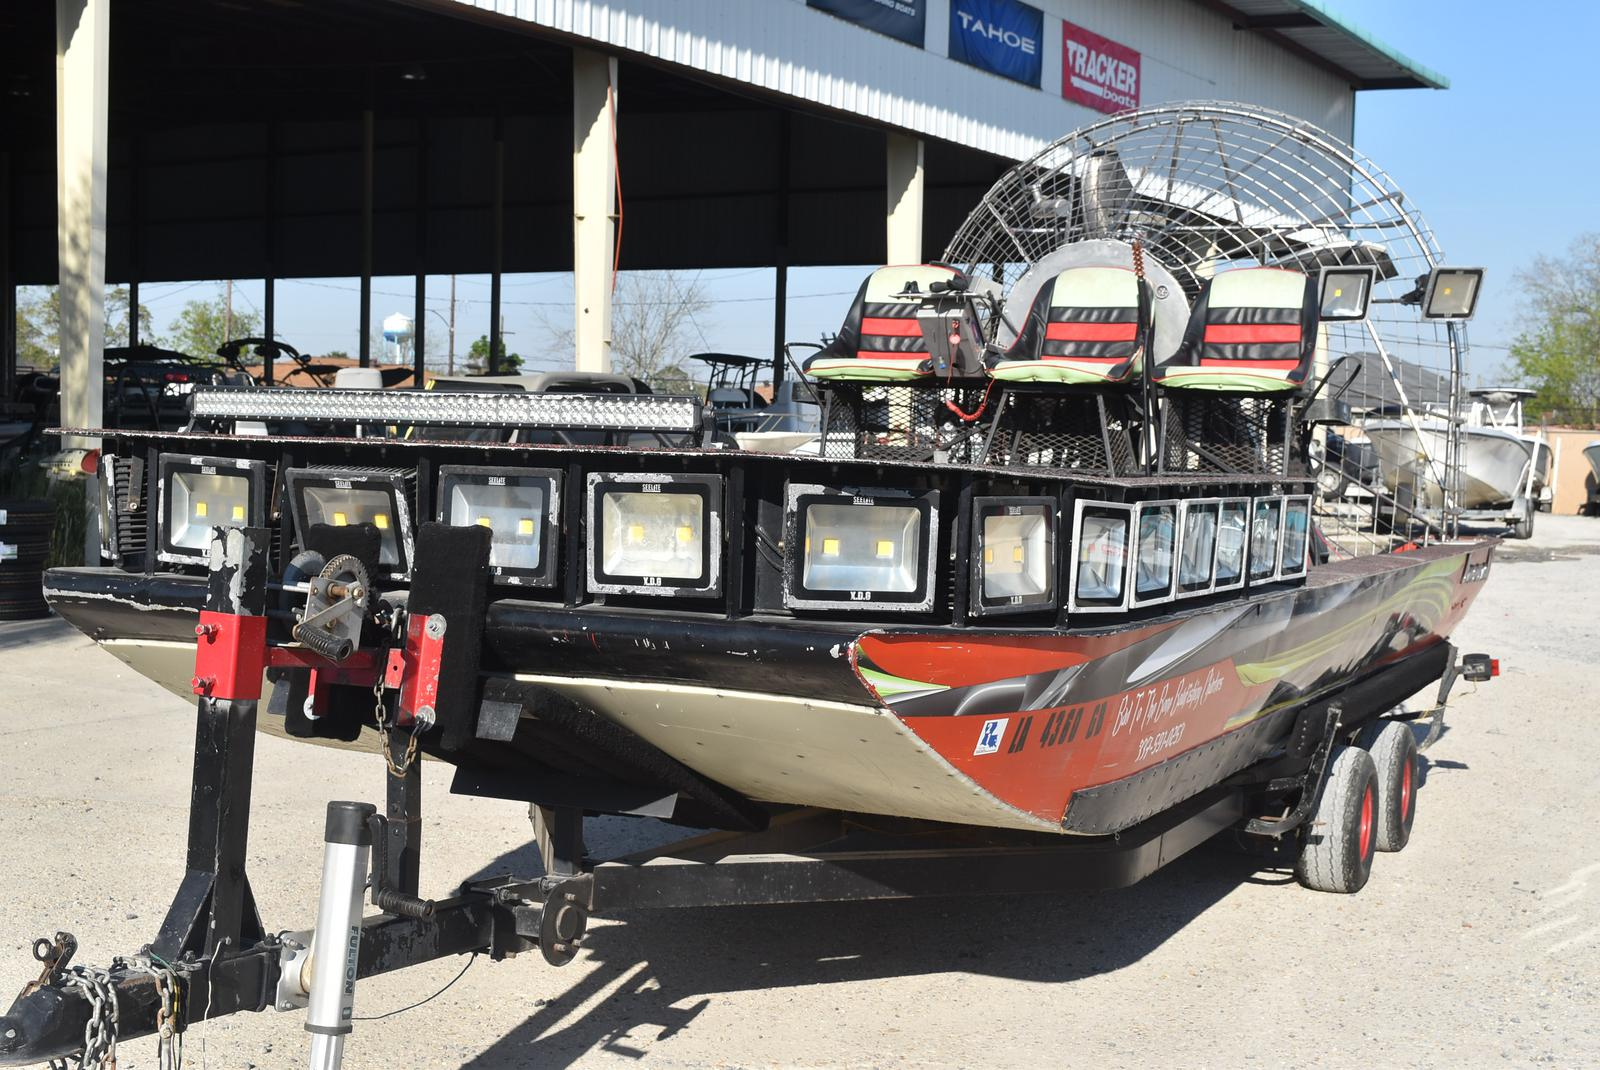 2016 Diamondback boat for sale, model of the boat is Trailboss 20 & Image # 12 of 35